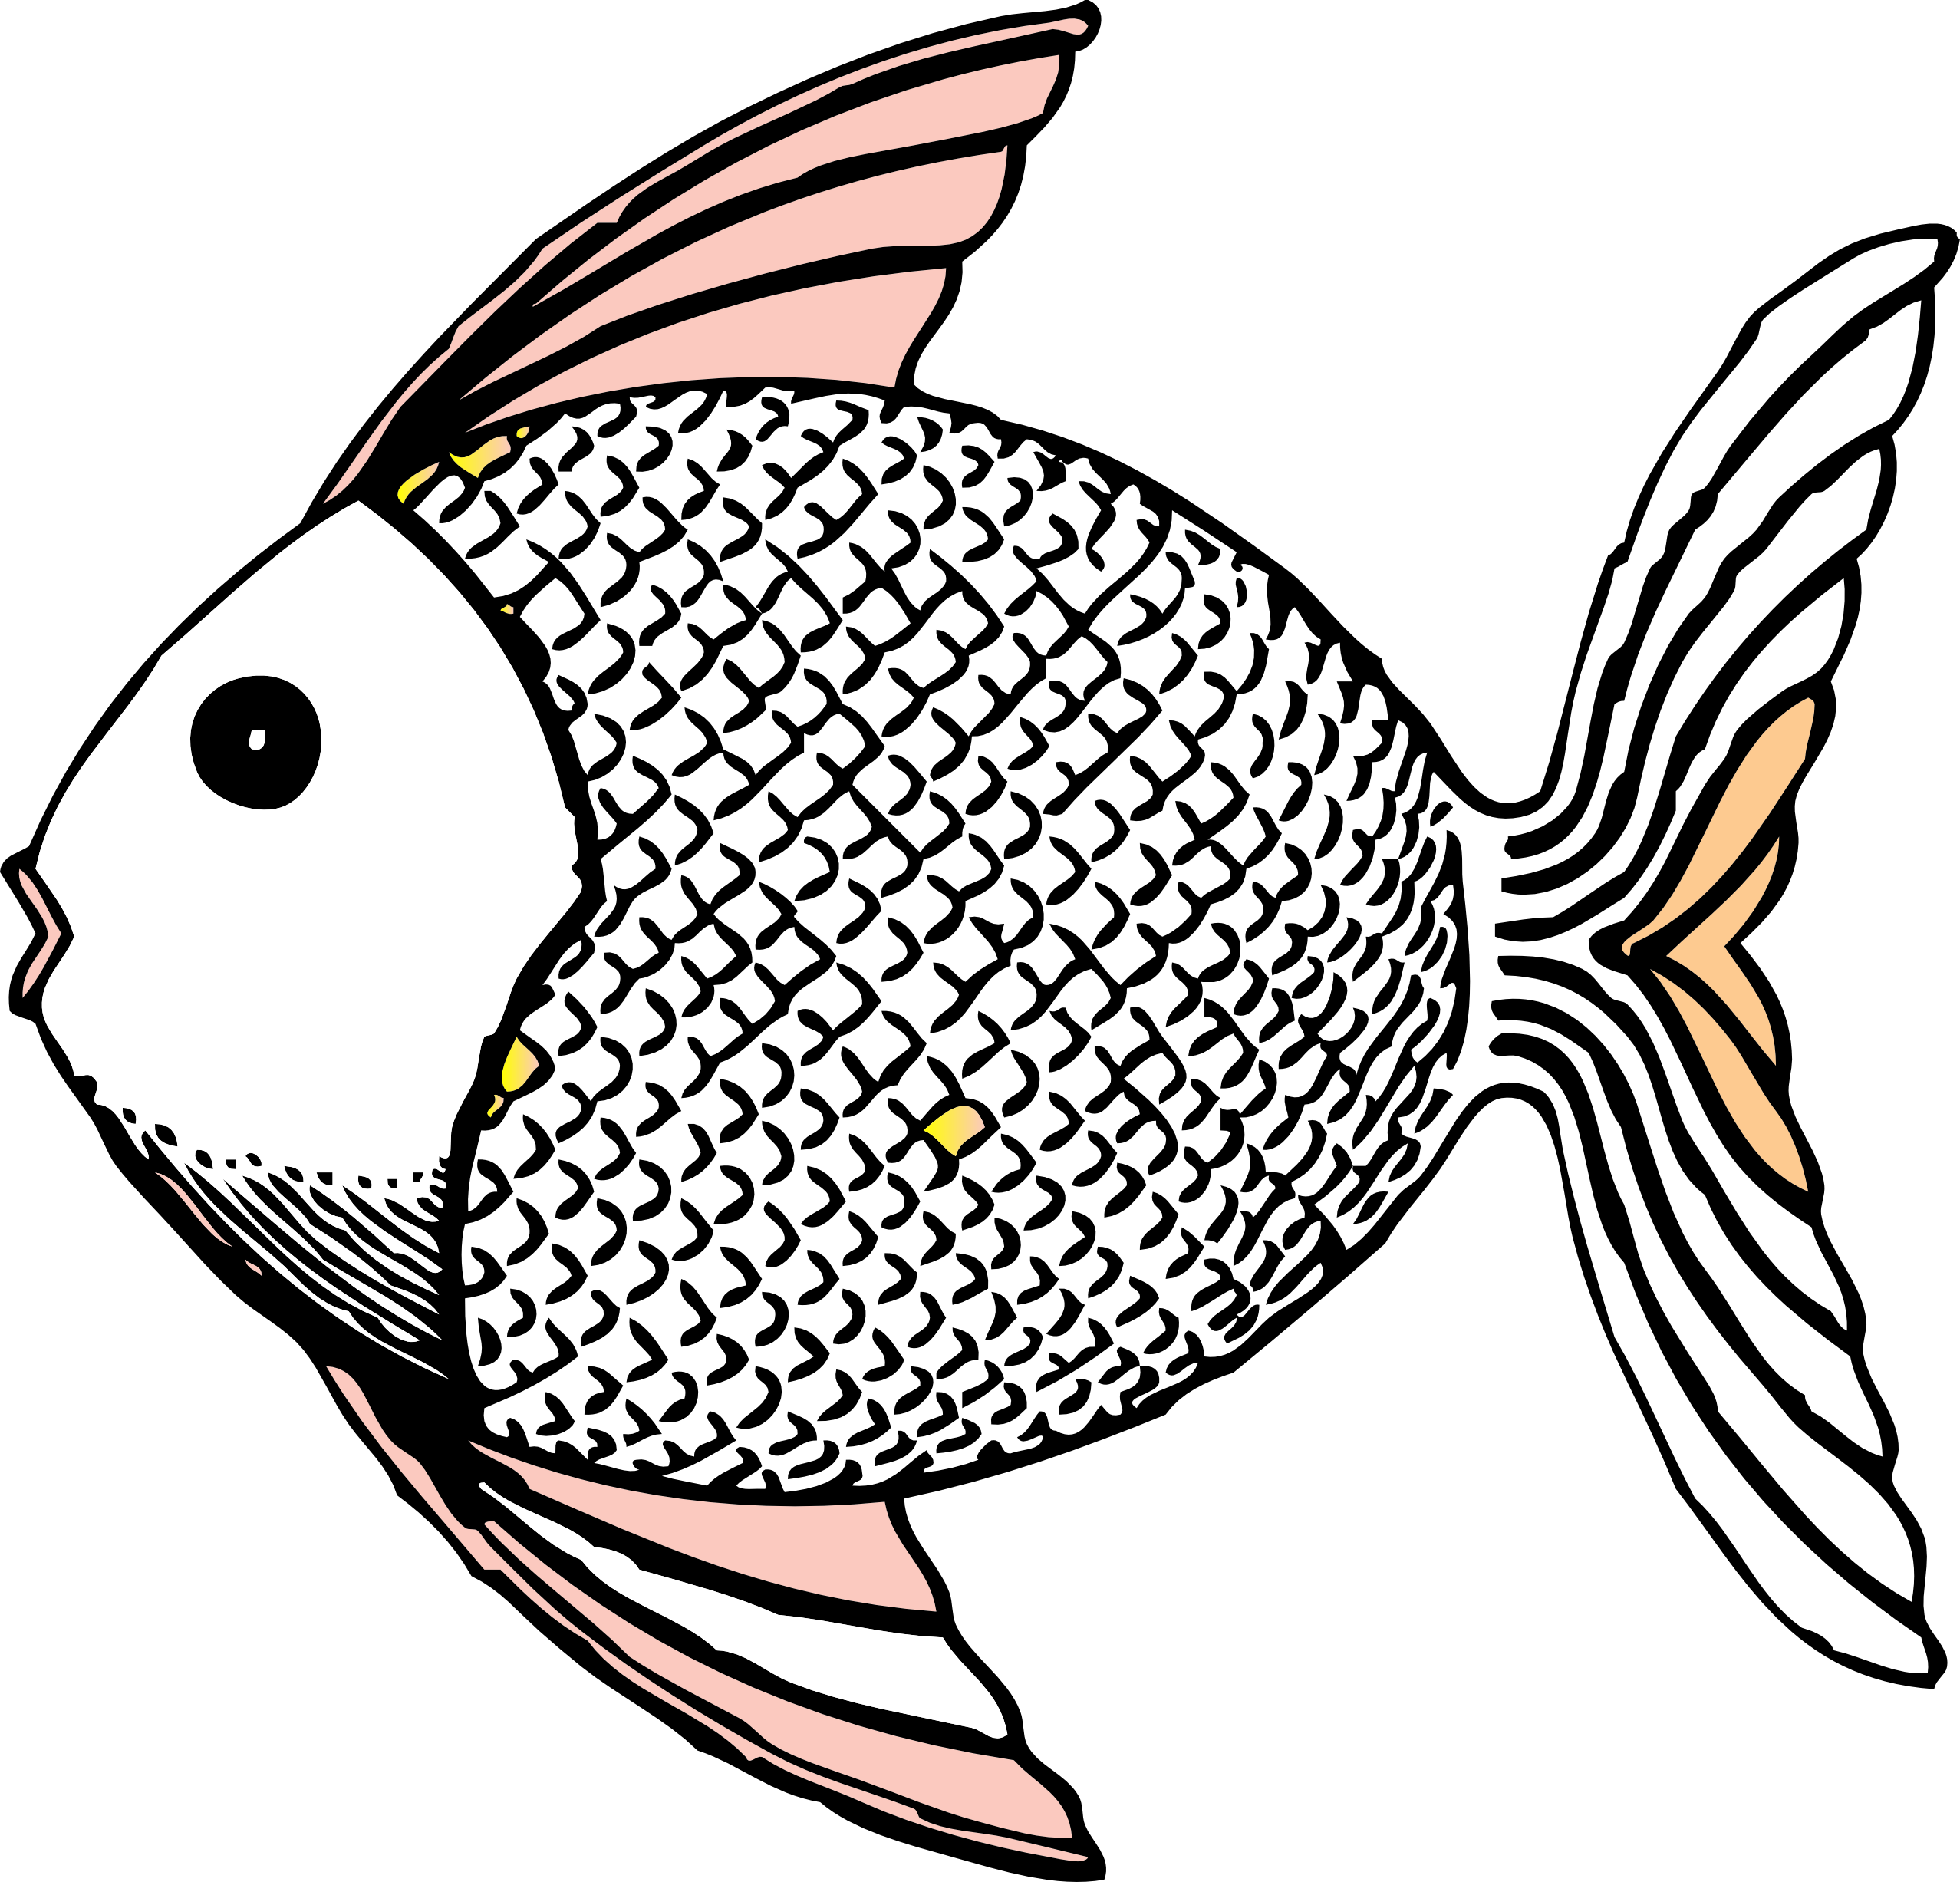 Tropical fish clipart black and white jpg library library Fish Clip Art Black and White | tropical fish black white line art ... jpg library library